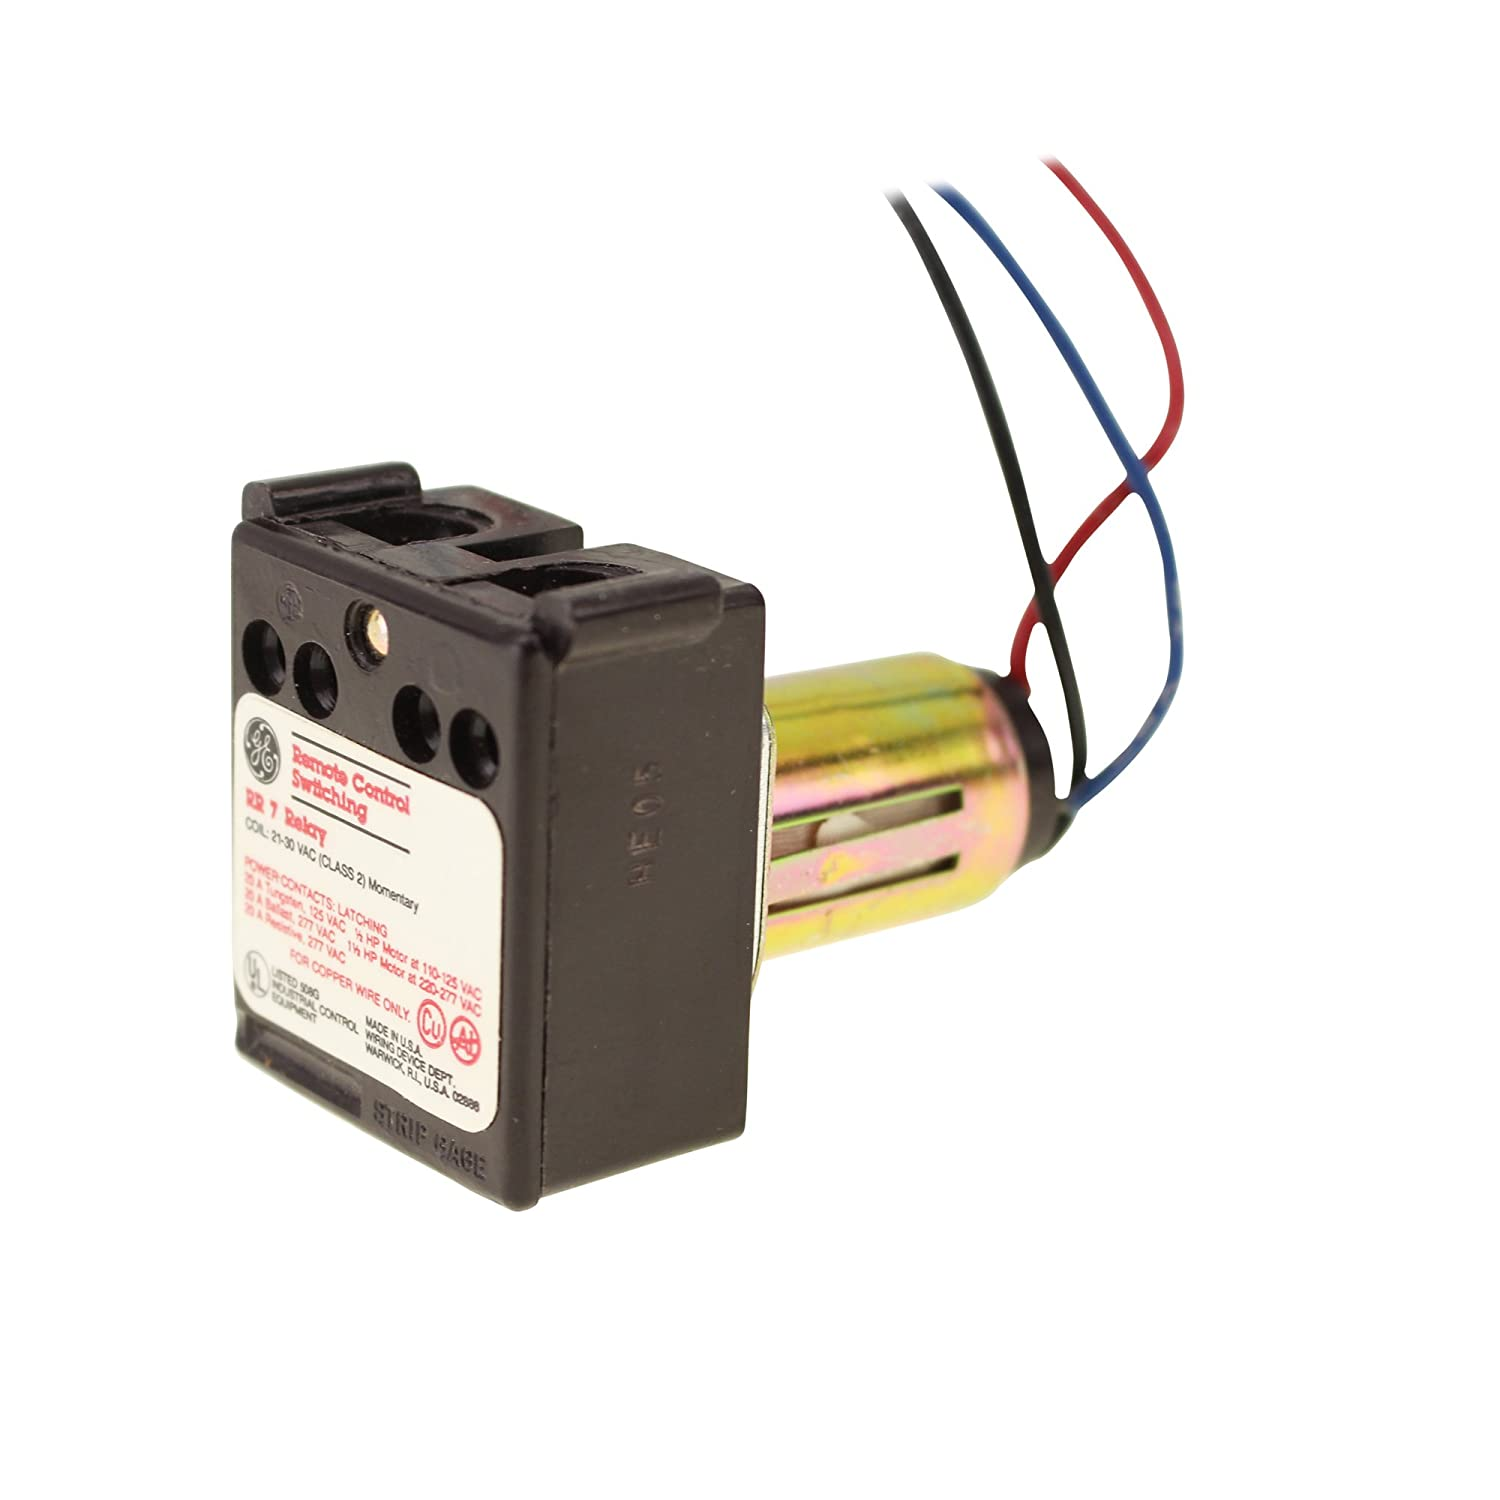 General Electric Ge Rr7 Remote Control 21 30v Ac Relay Rr3 Wiring Diagram Home Improvement